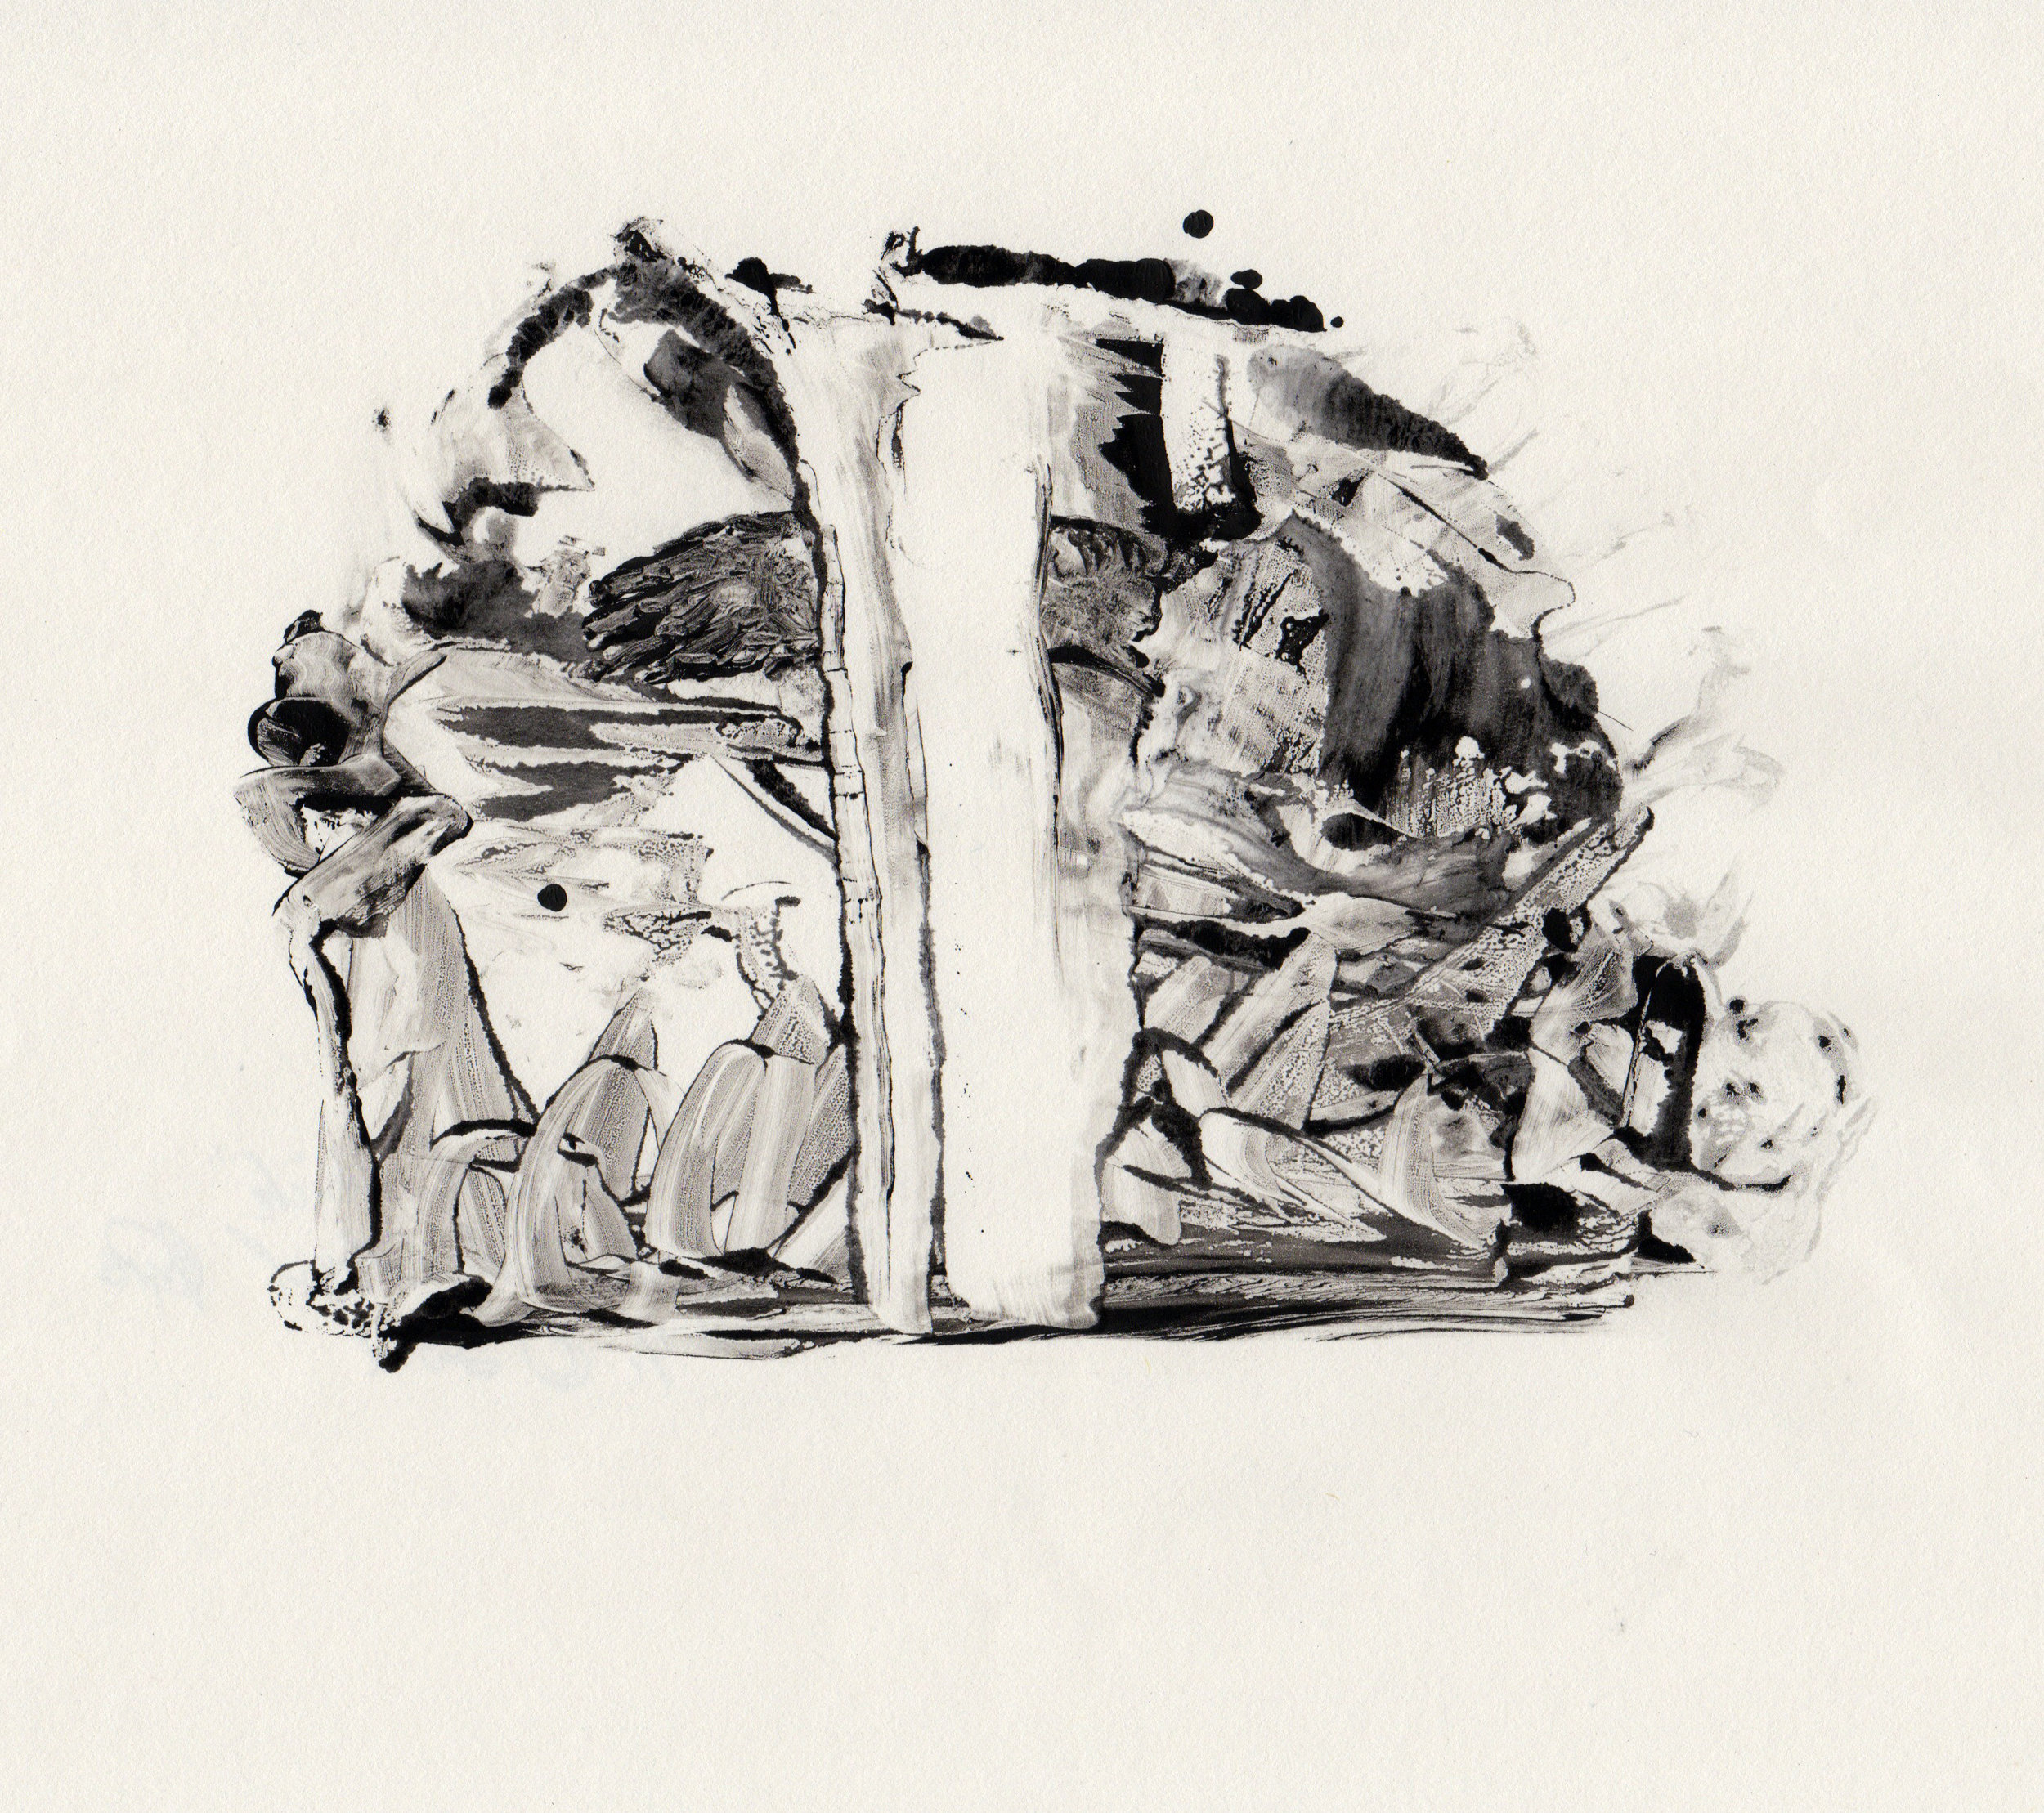 In The Thick, 2014, gelatin monotype, 10x9 inches